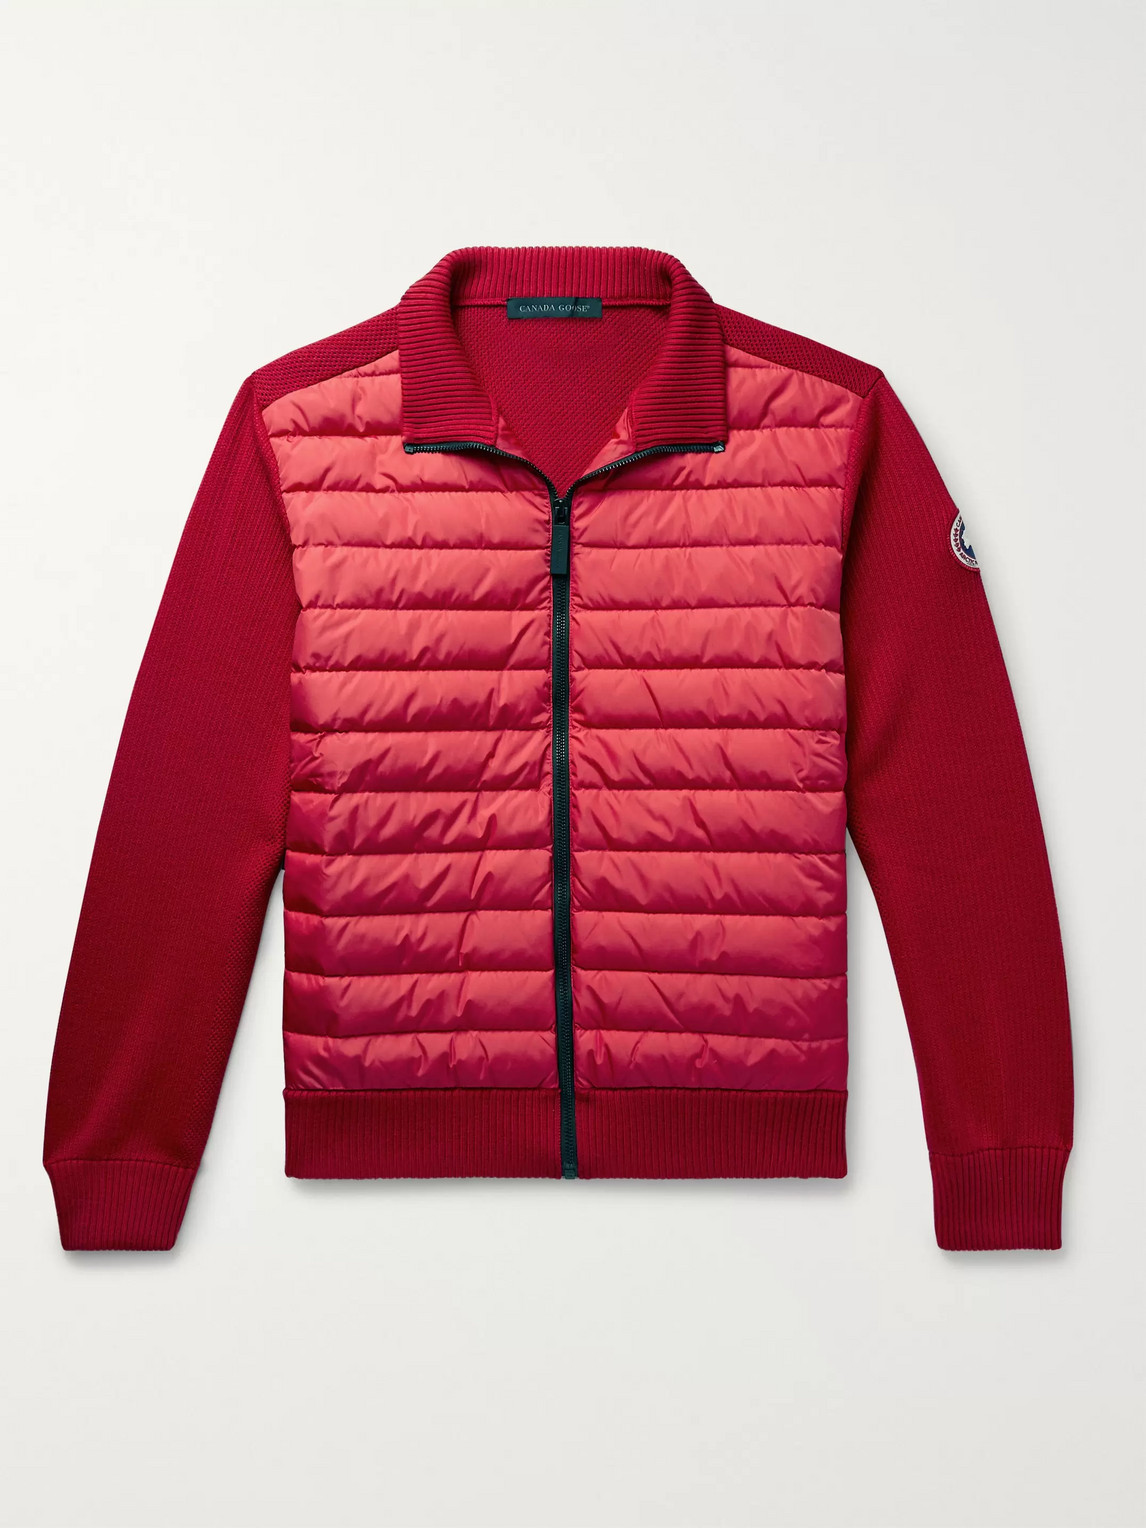 canada goose - hybridge quilted down shell and merino wool jacket - men - red